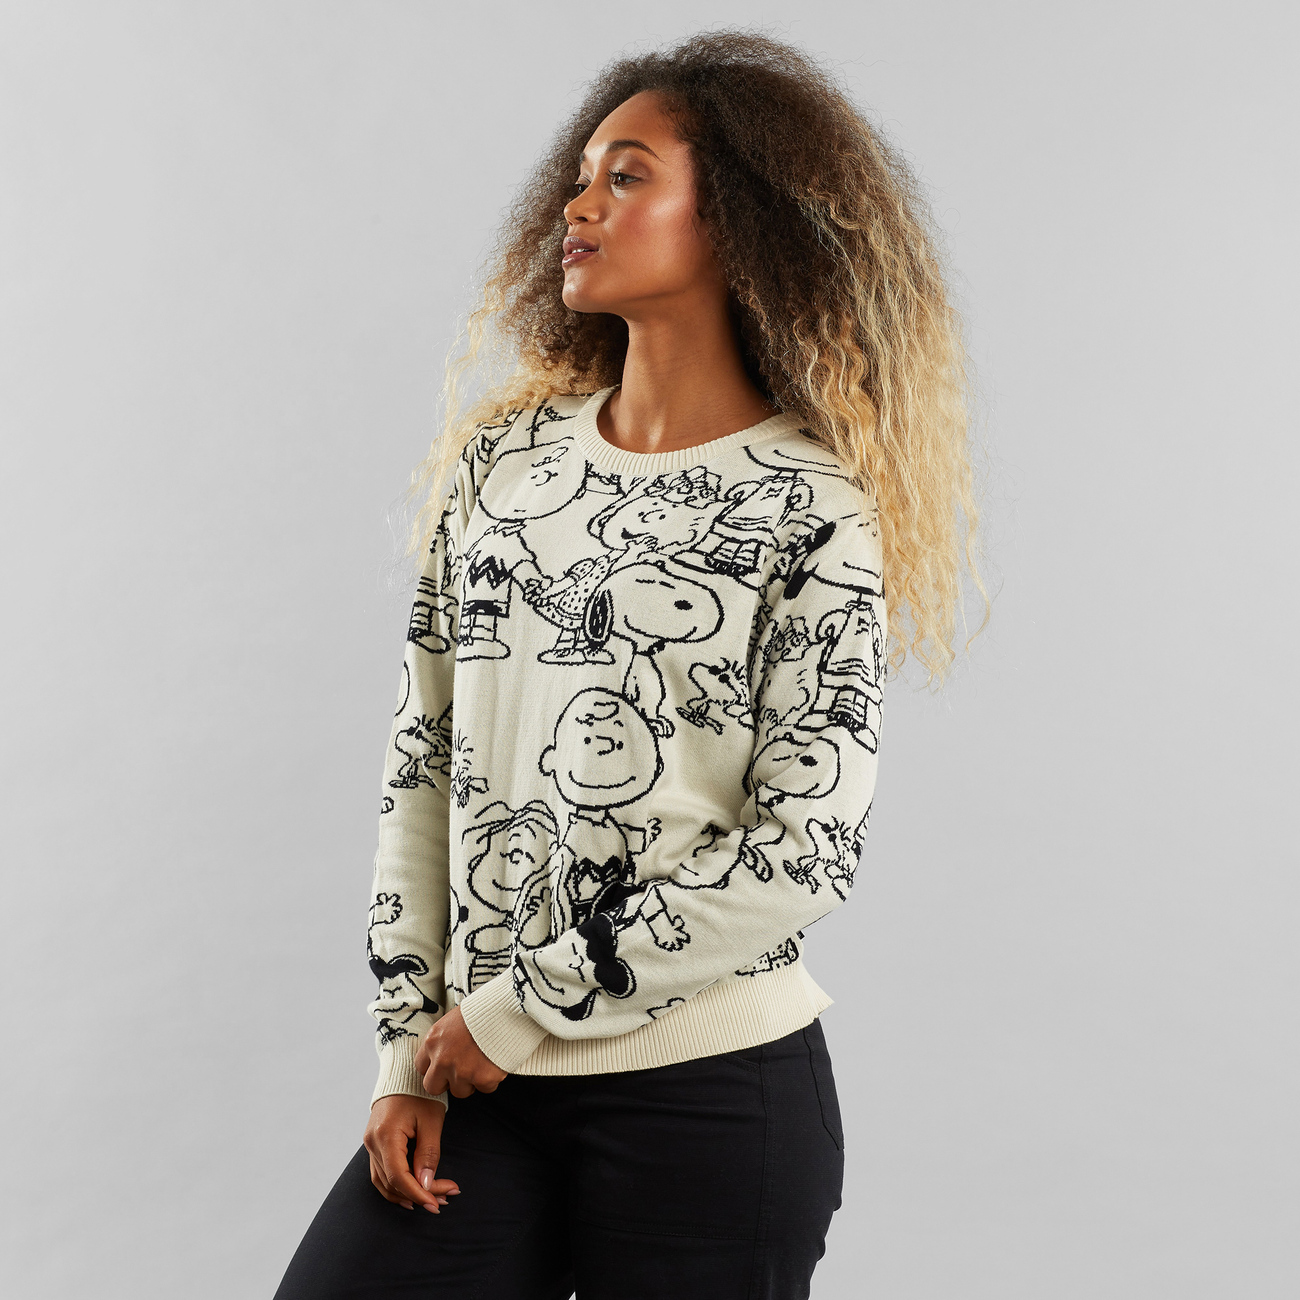 Sweater Arendal Peanuts AOP Off-White